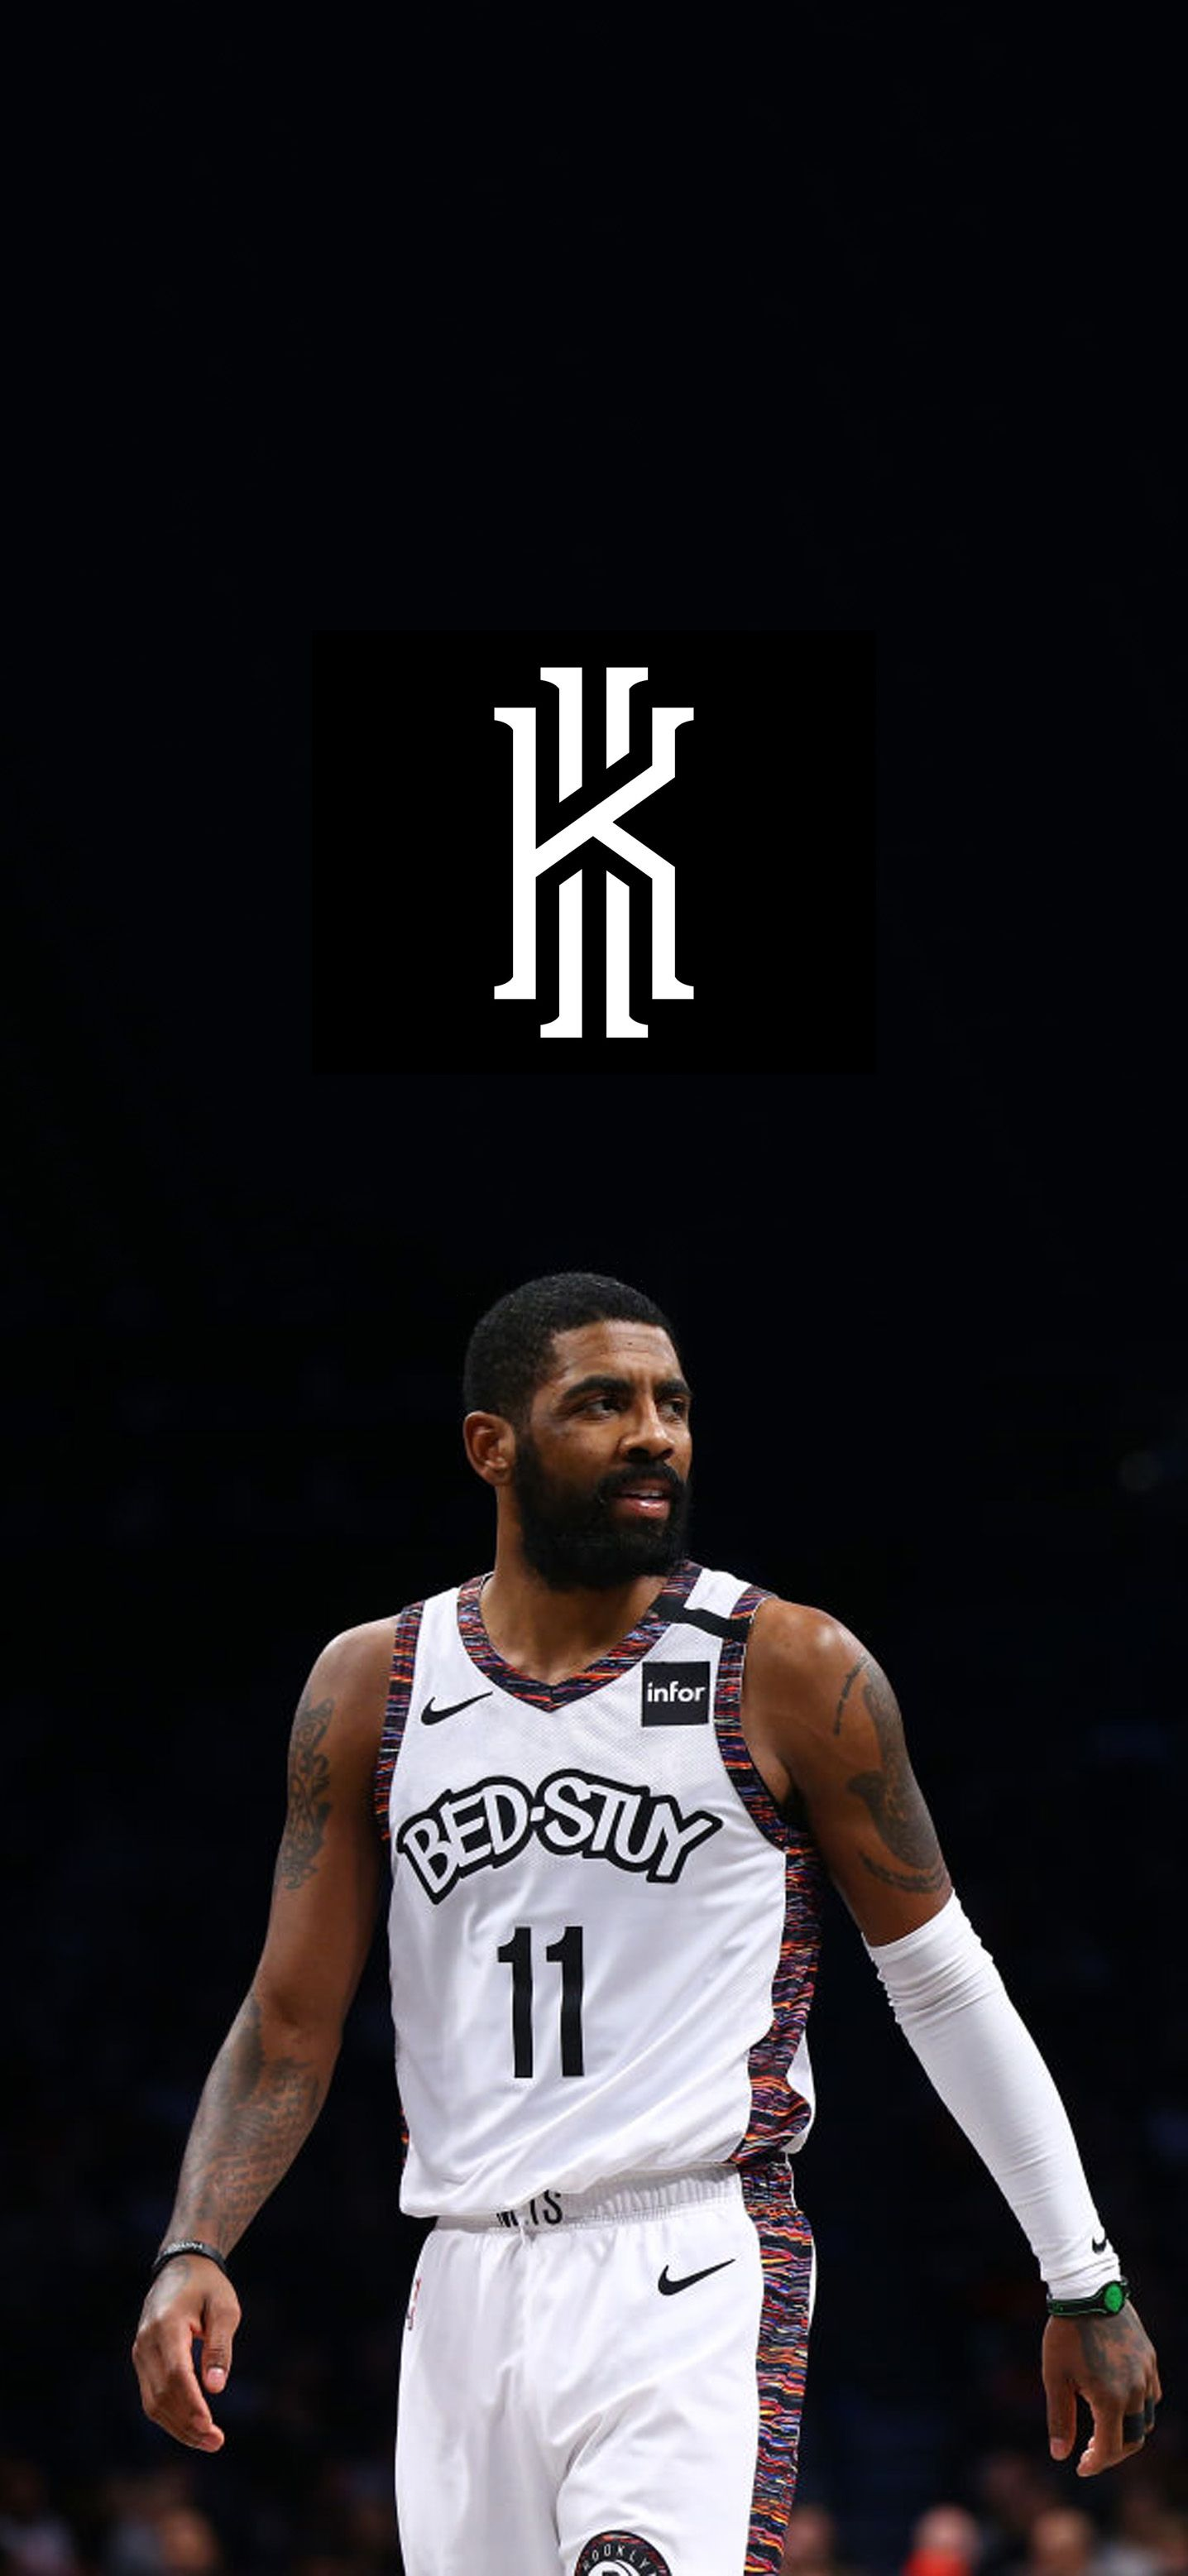 Kyrie Irving Wallpaper Irving Wallpapers Kyrie Irving Logo Wallpaper Kyrie Irving